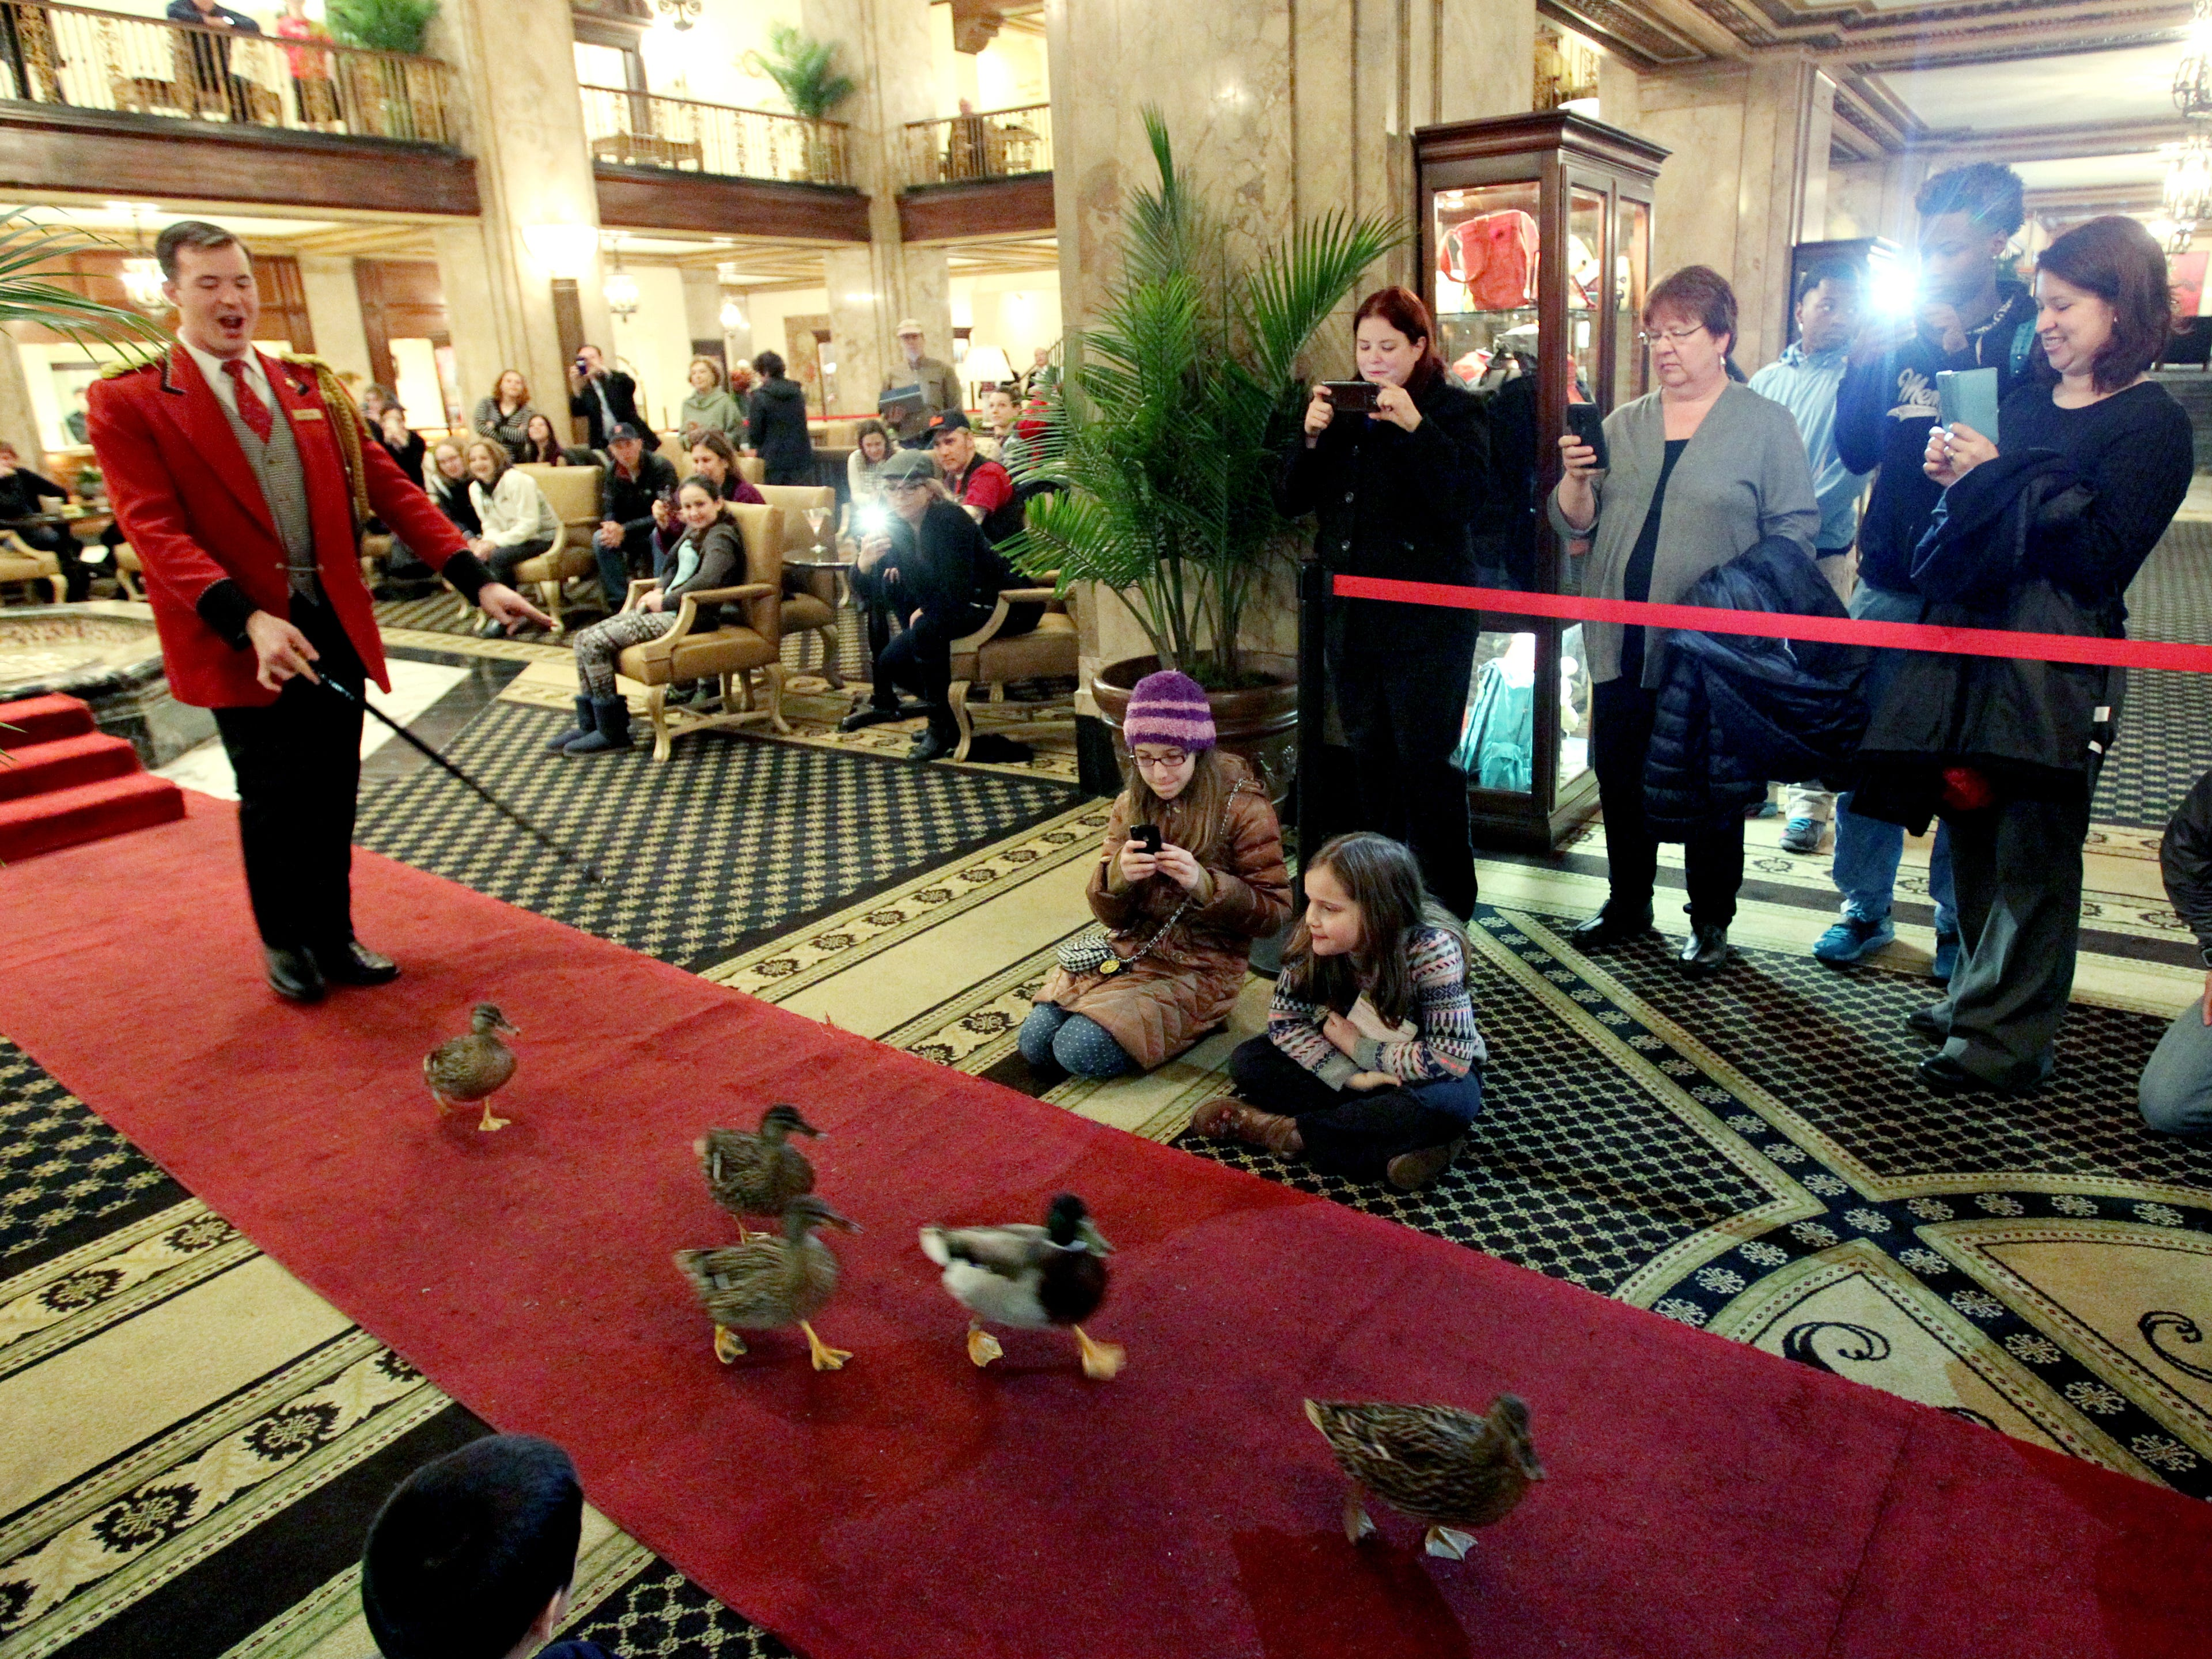 Hotel guests line up for the march of the Peabody Ducks at the Peabody Hotel on Feb. 16, 2015. Memphis area hotels had the highest occupancy rate in more the 25 years in 2014.